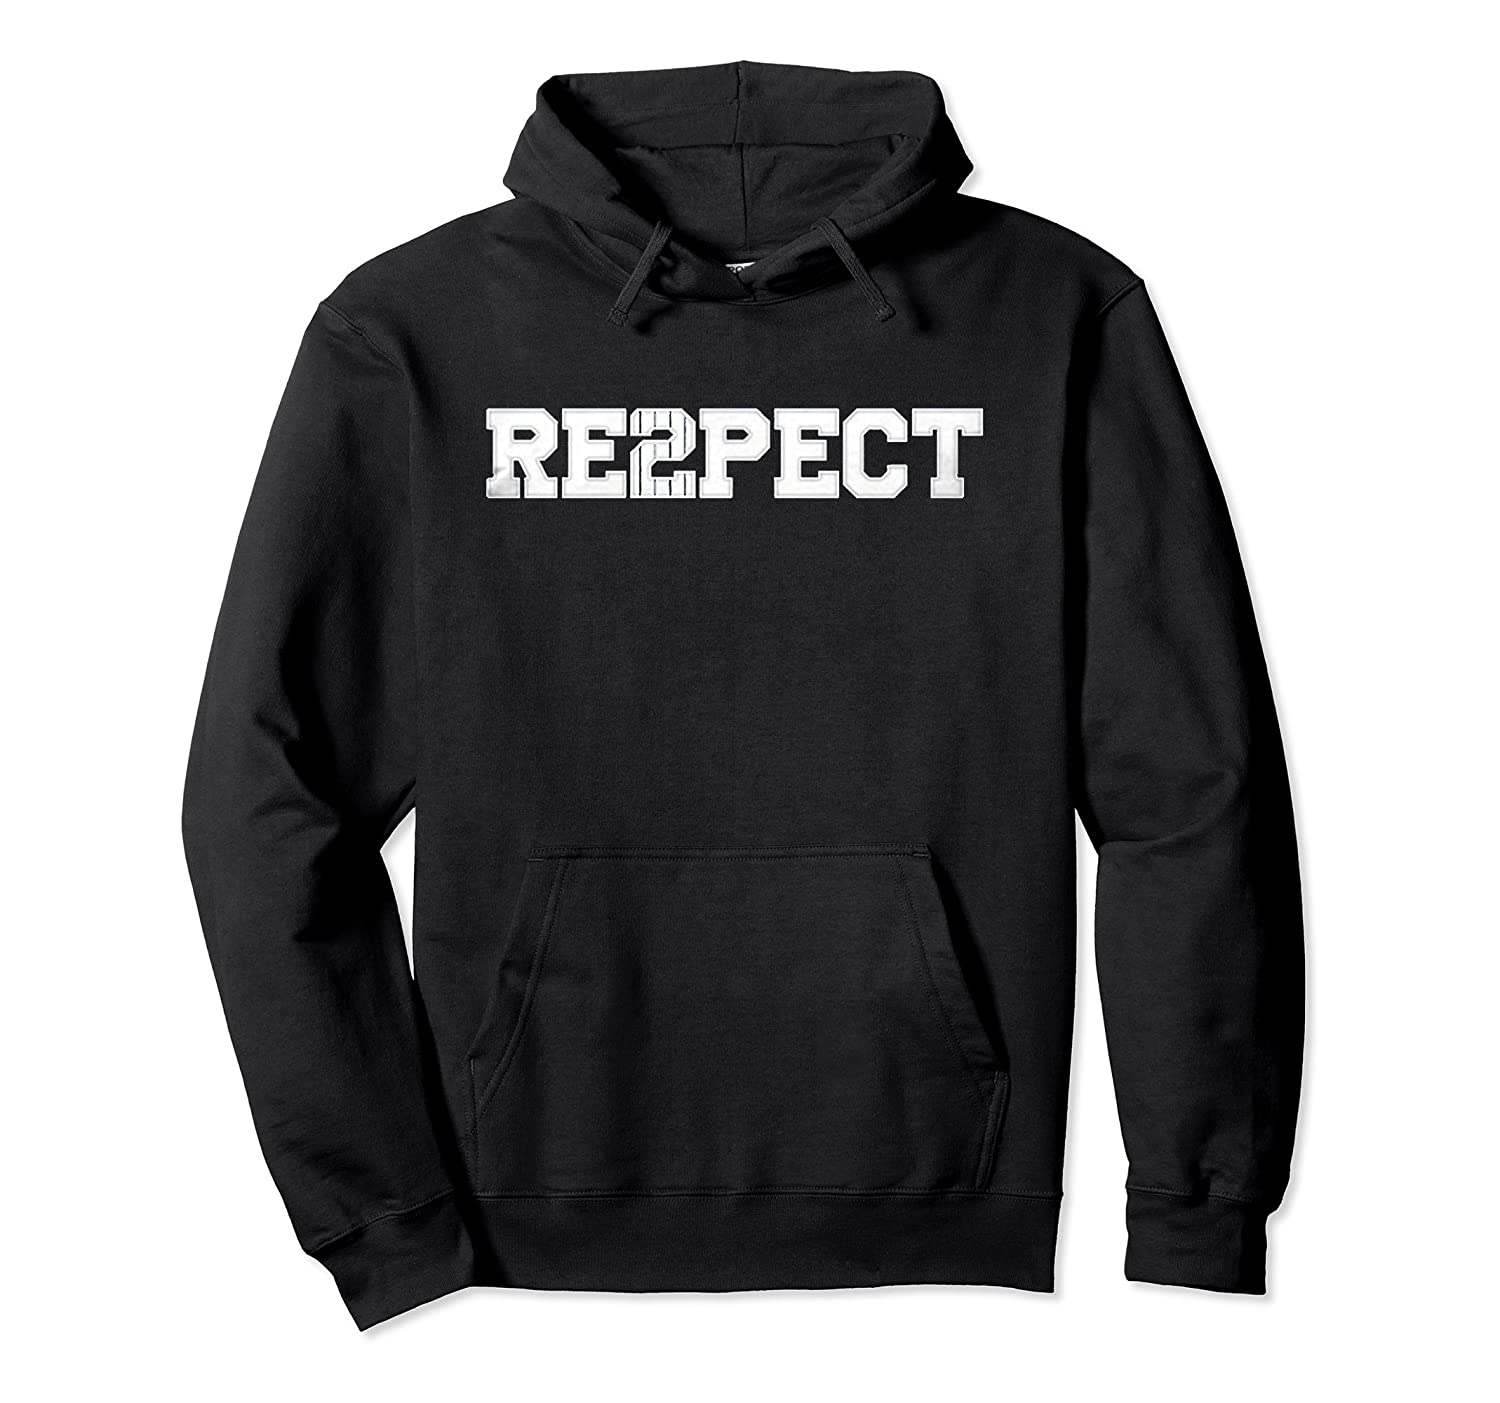 a9952cca91c0 Amazon.com  Re2pect Hoodie Respect Derek Hoodies  Clothing